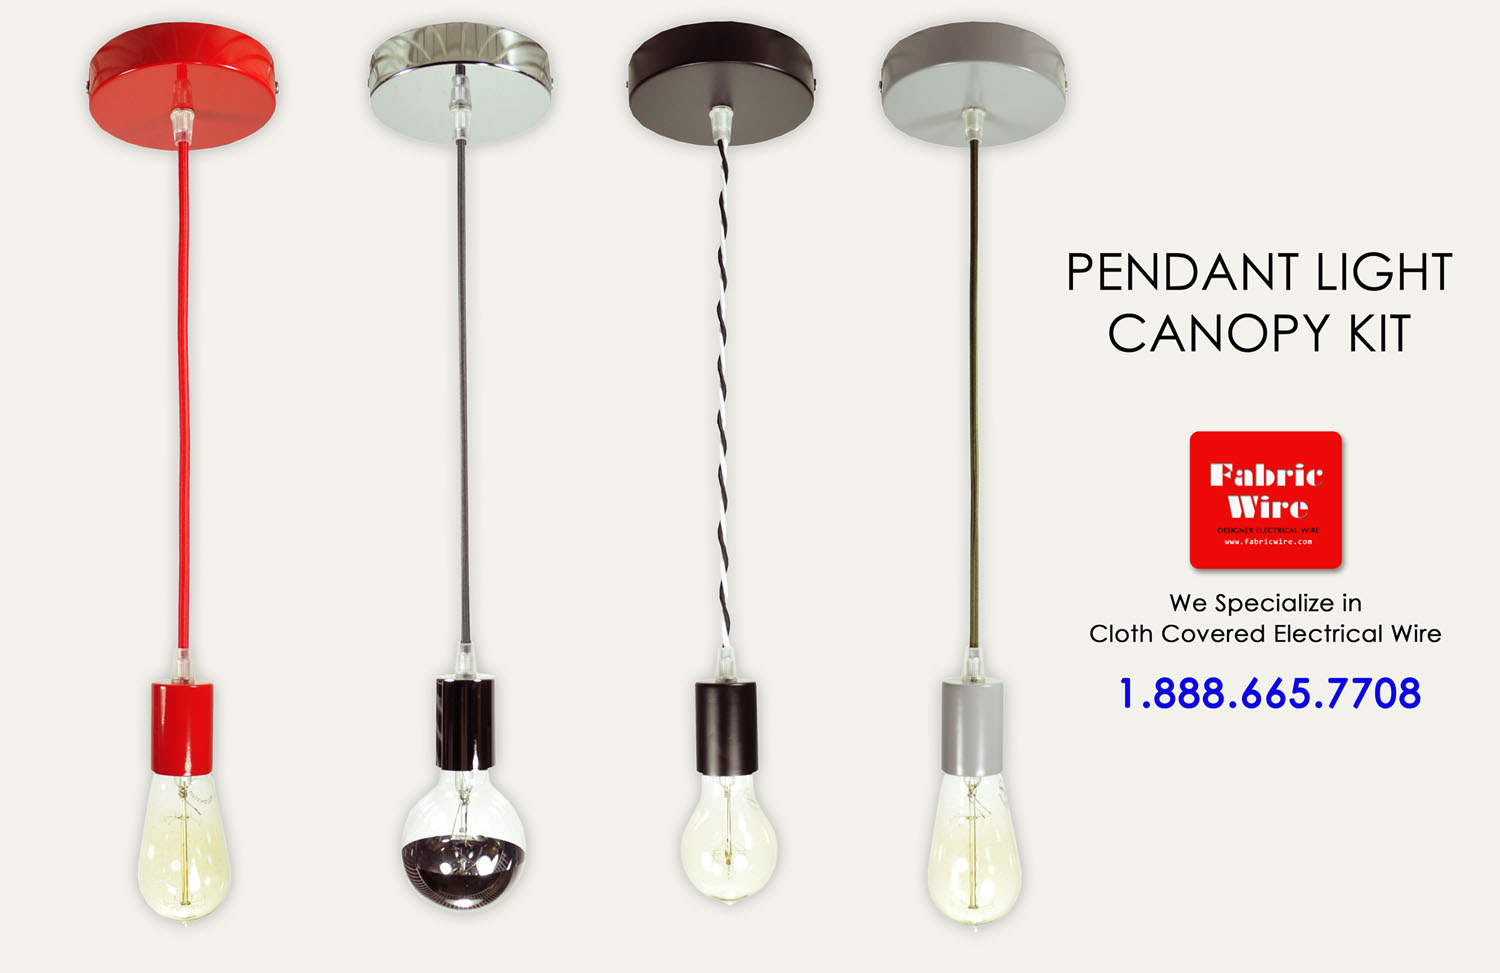 Pendant Light Kit Canopy Kit